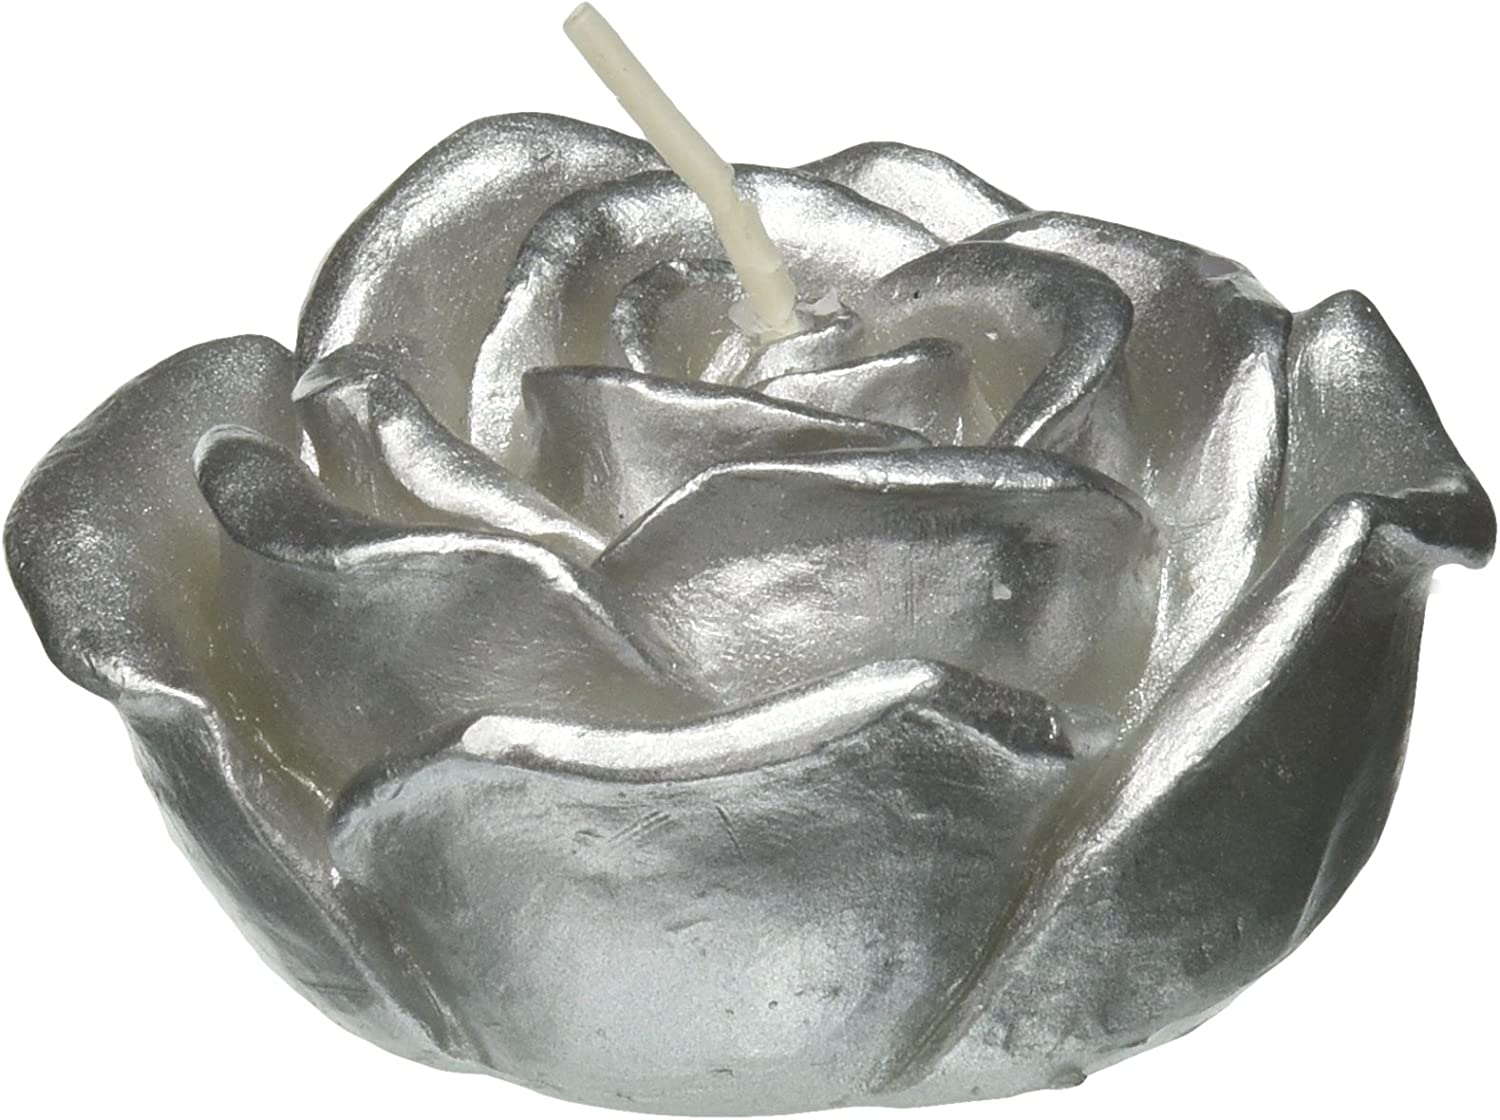 Max 78% OFF Zest Candle 12-Piece Folding Candles Popular shop is the lowest price challenge Ro Silver 3-Inch Metallic